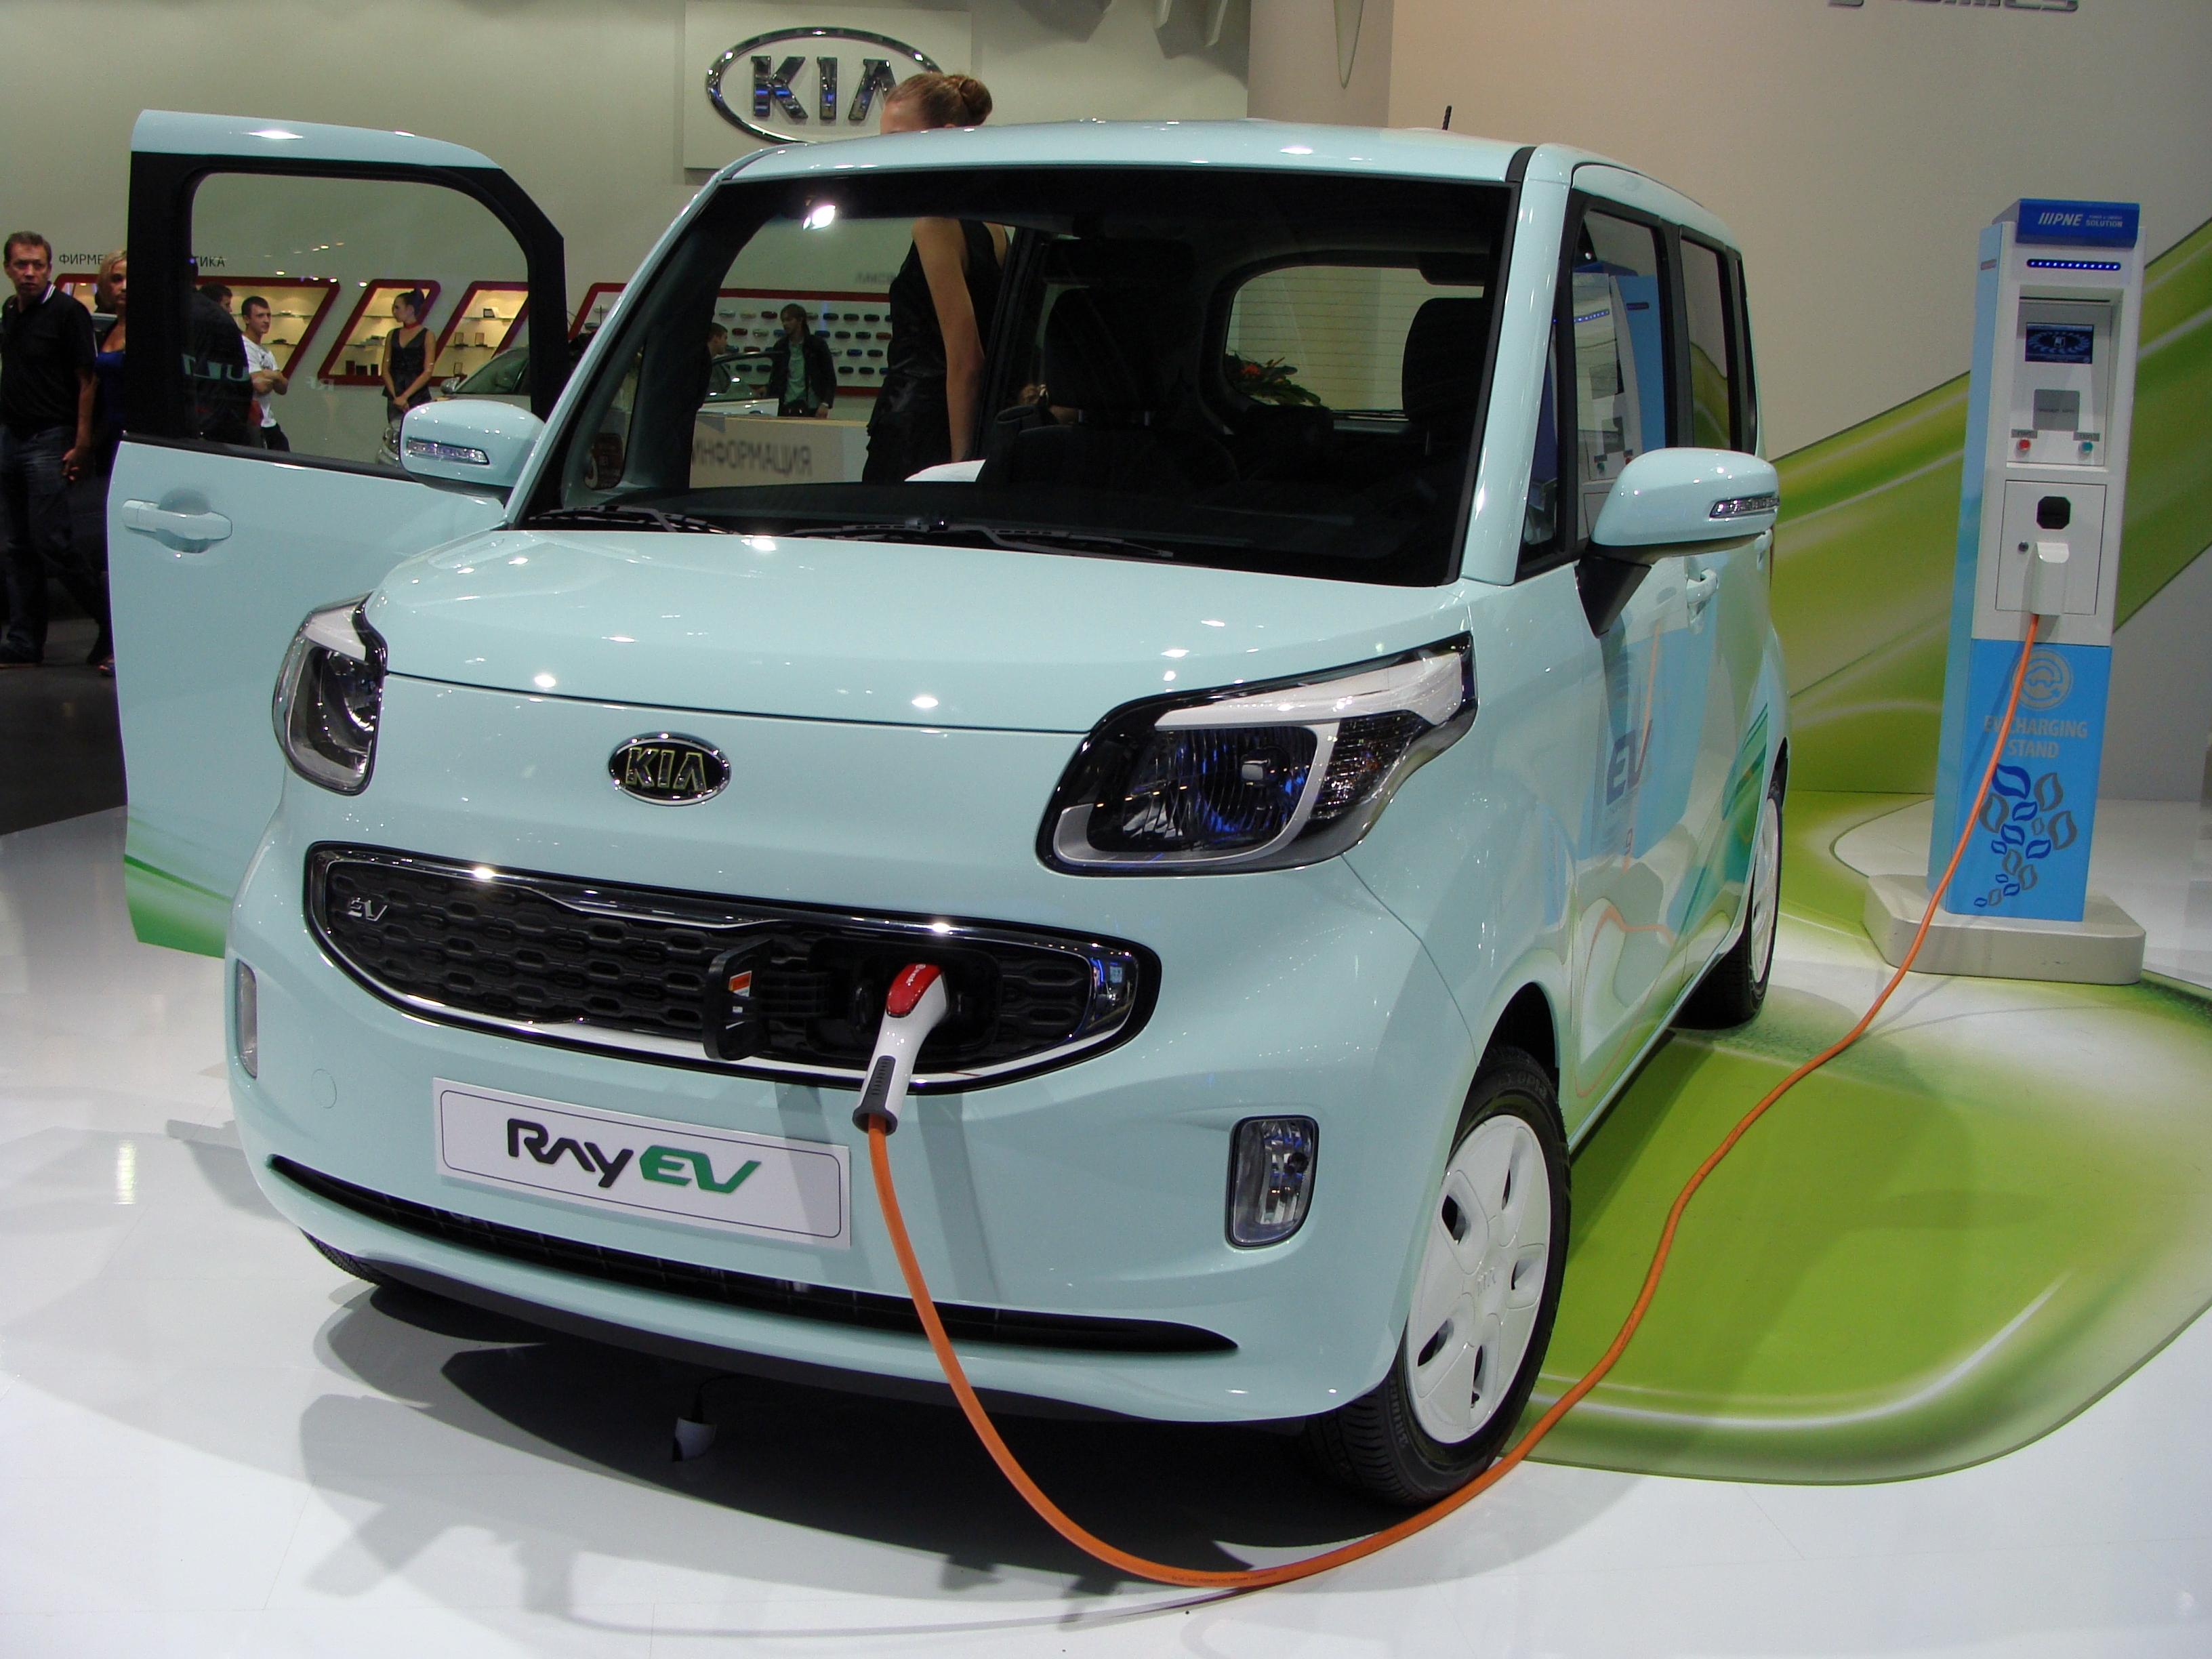 Kia Soul Ev >> File:KIA Ray EV on MIAS 2012.JPG - Wikimedia Commons